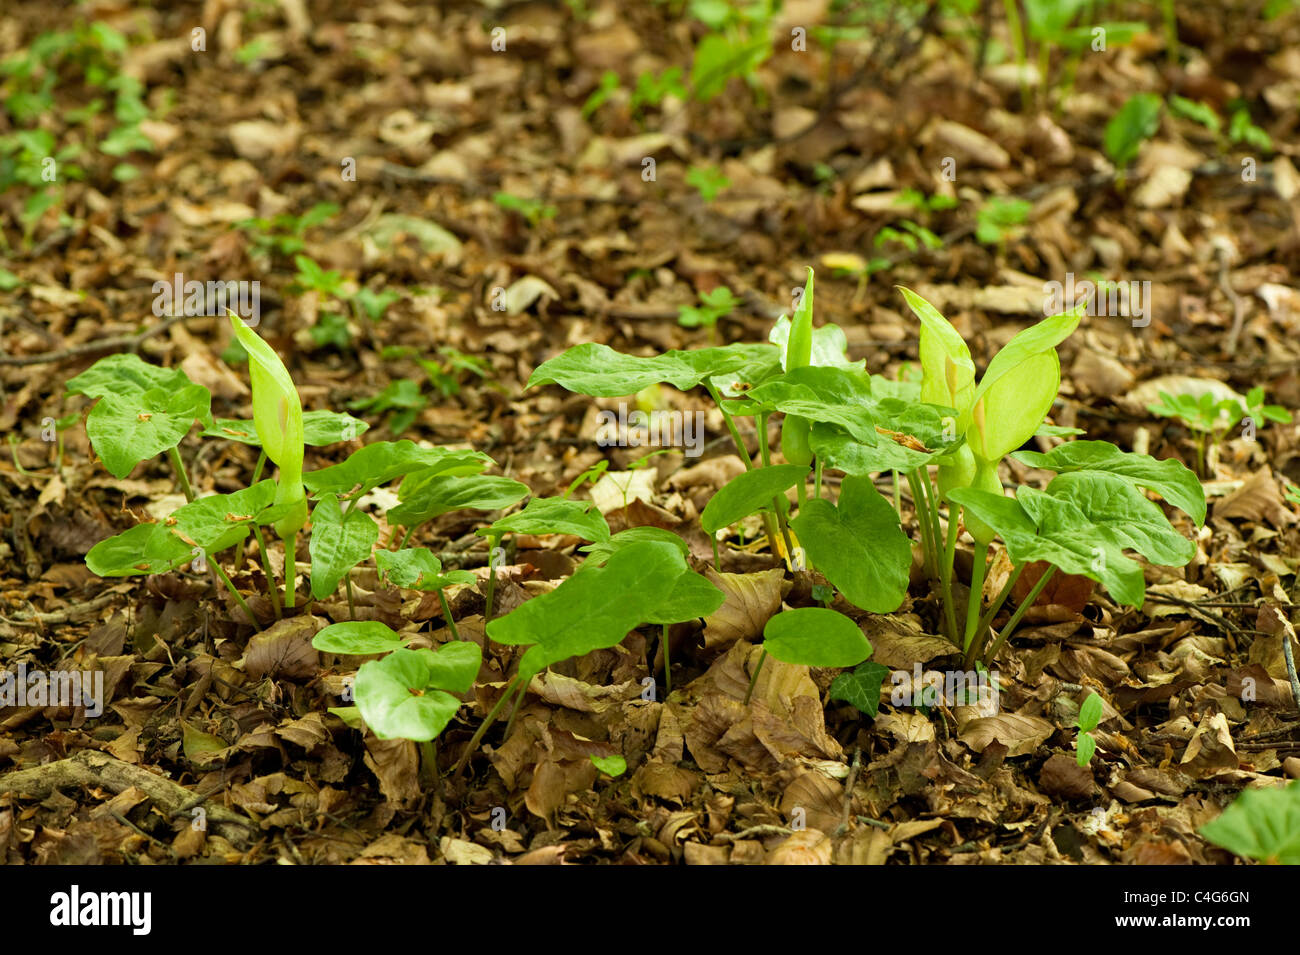 Italian Lords and Ladies, Arum italicum - Stock Image